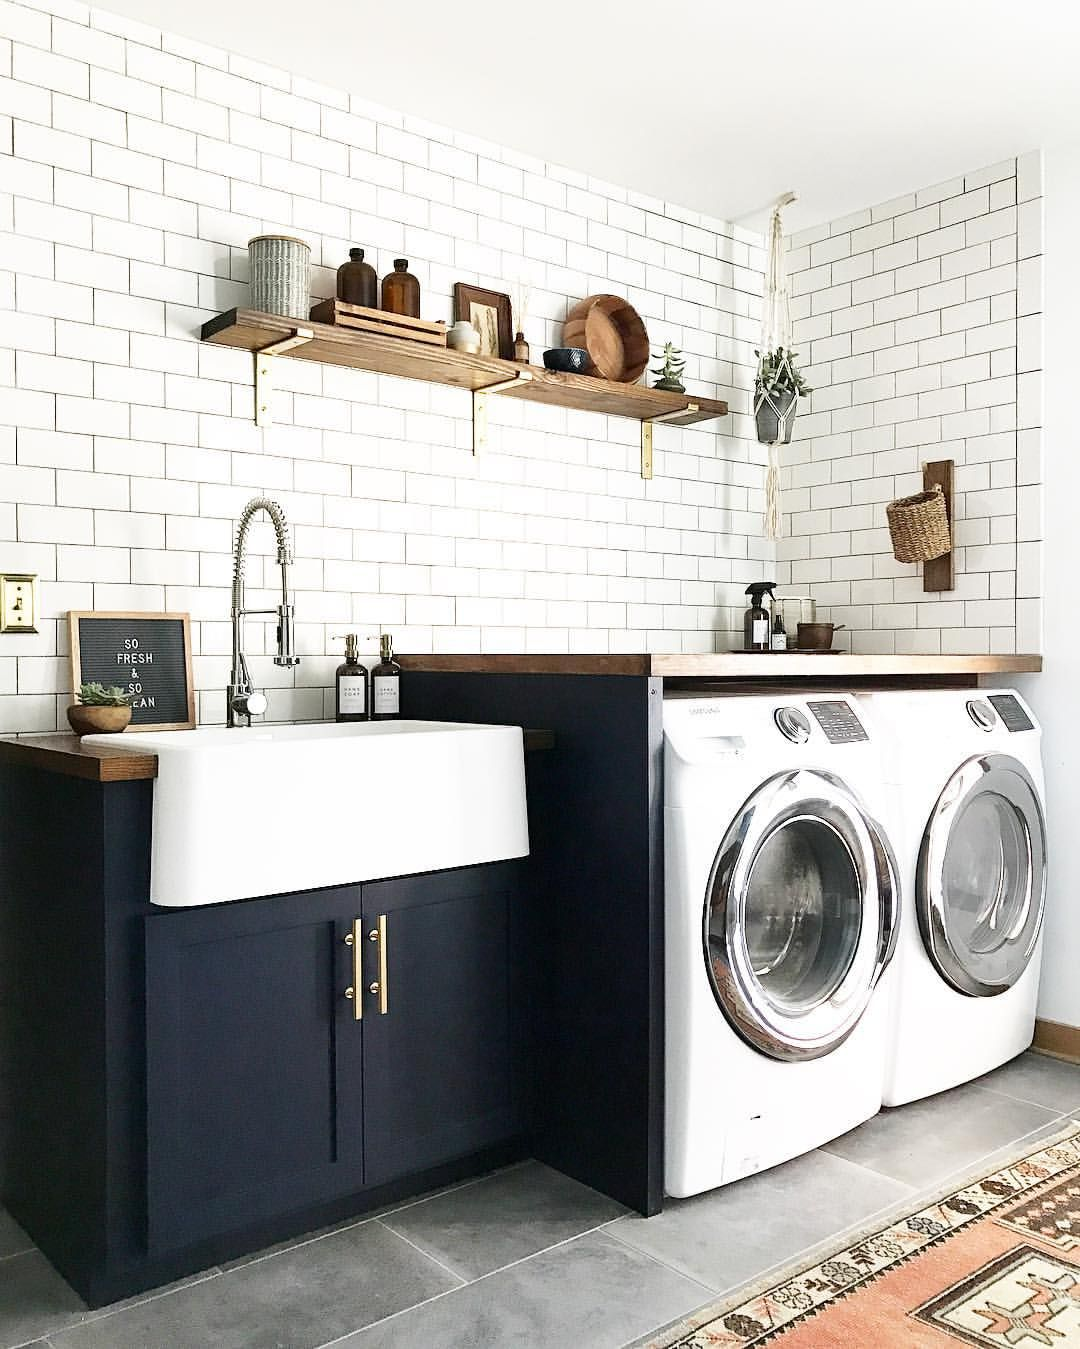 5 Tips On Buying Farmhouse Sink Laundry Room Inspiration